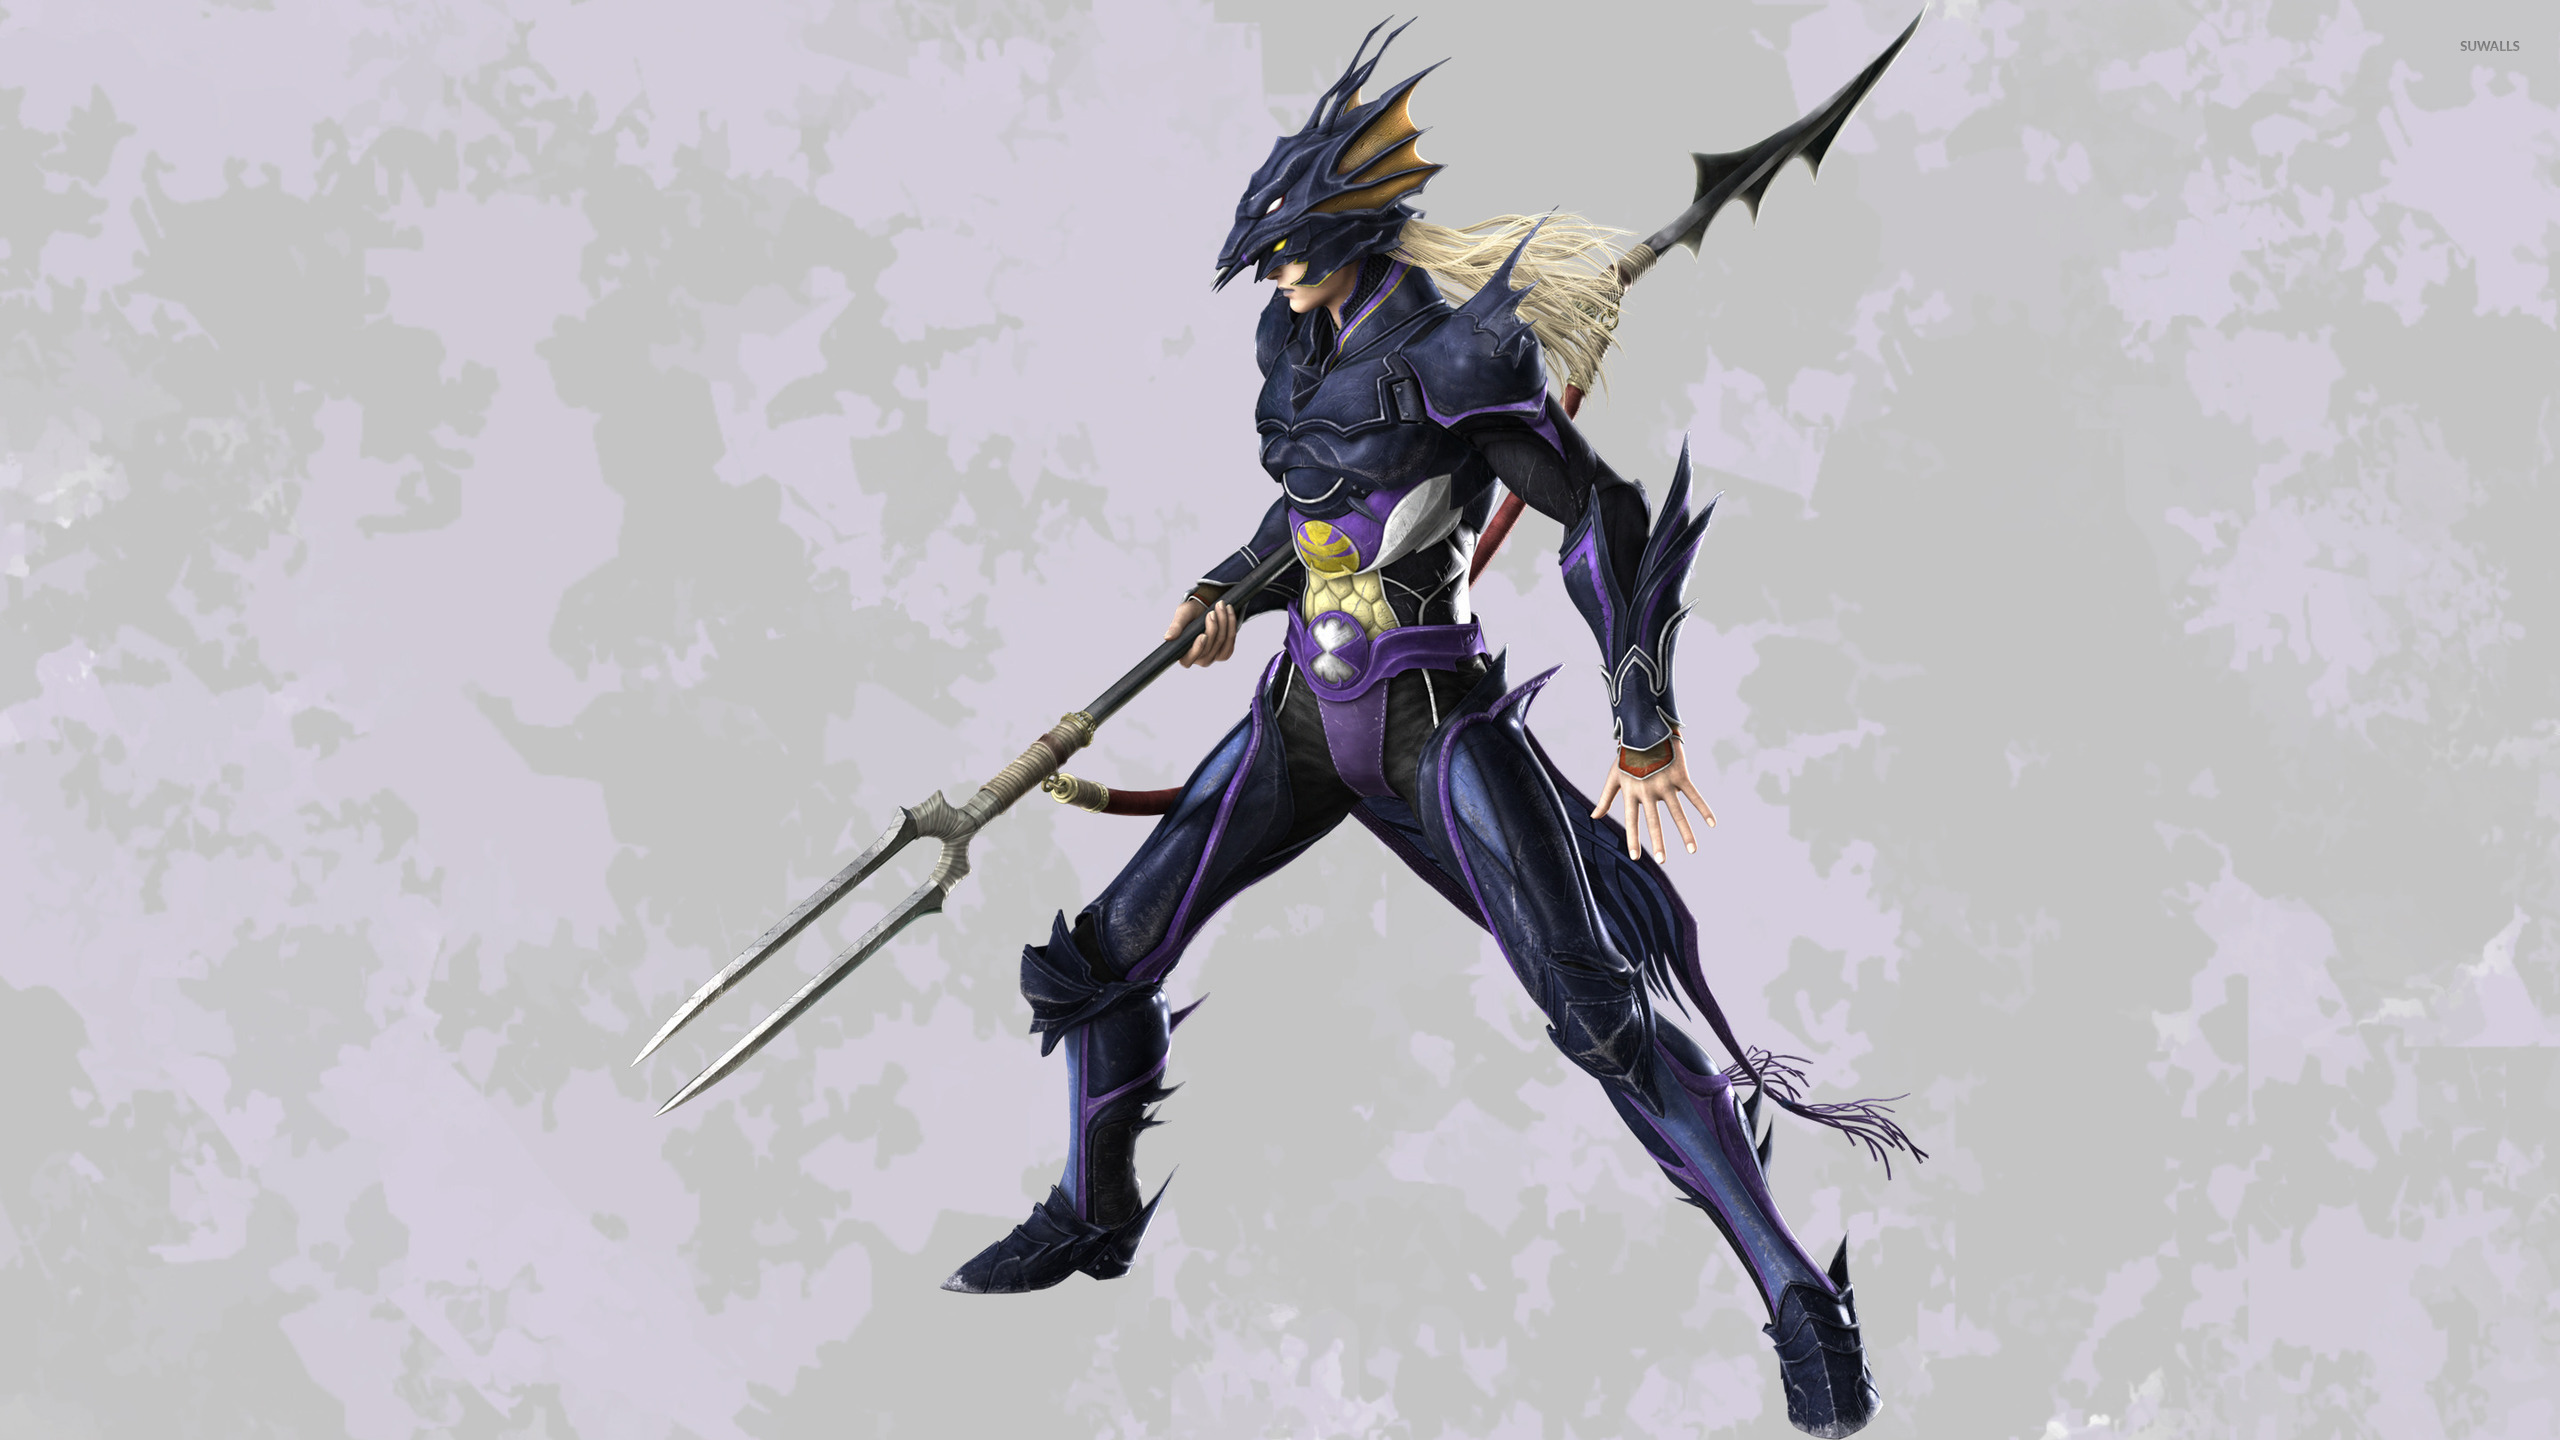 Final fantasy kain wallpaper - photo#2